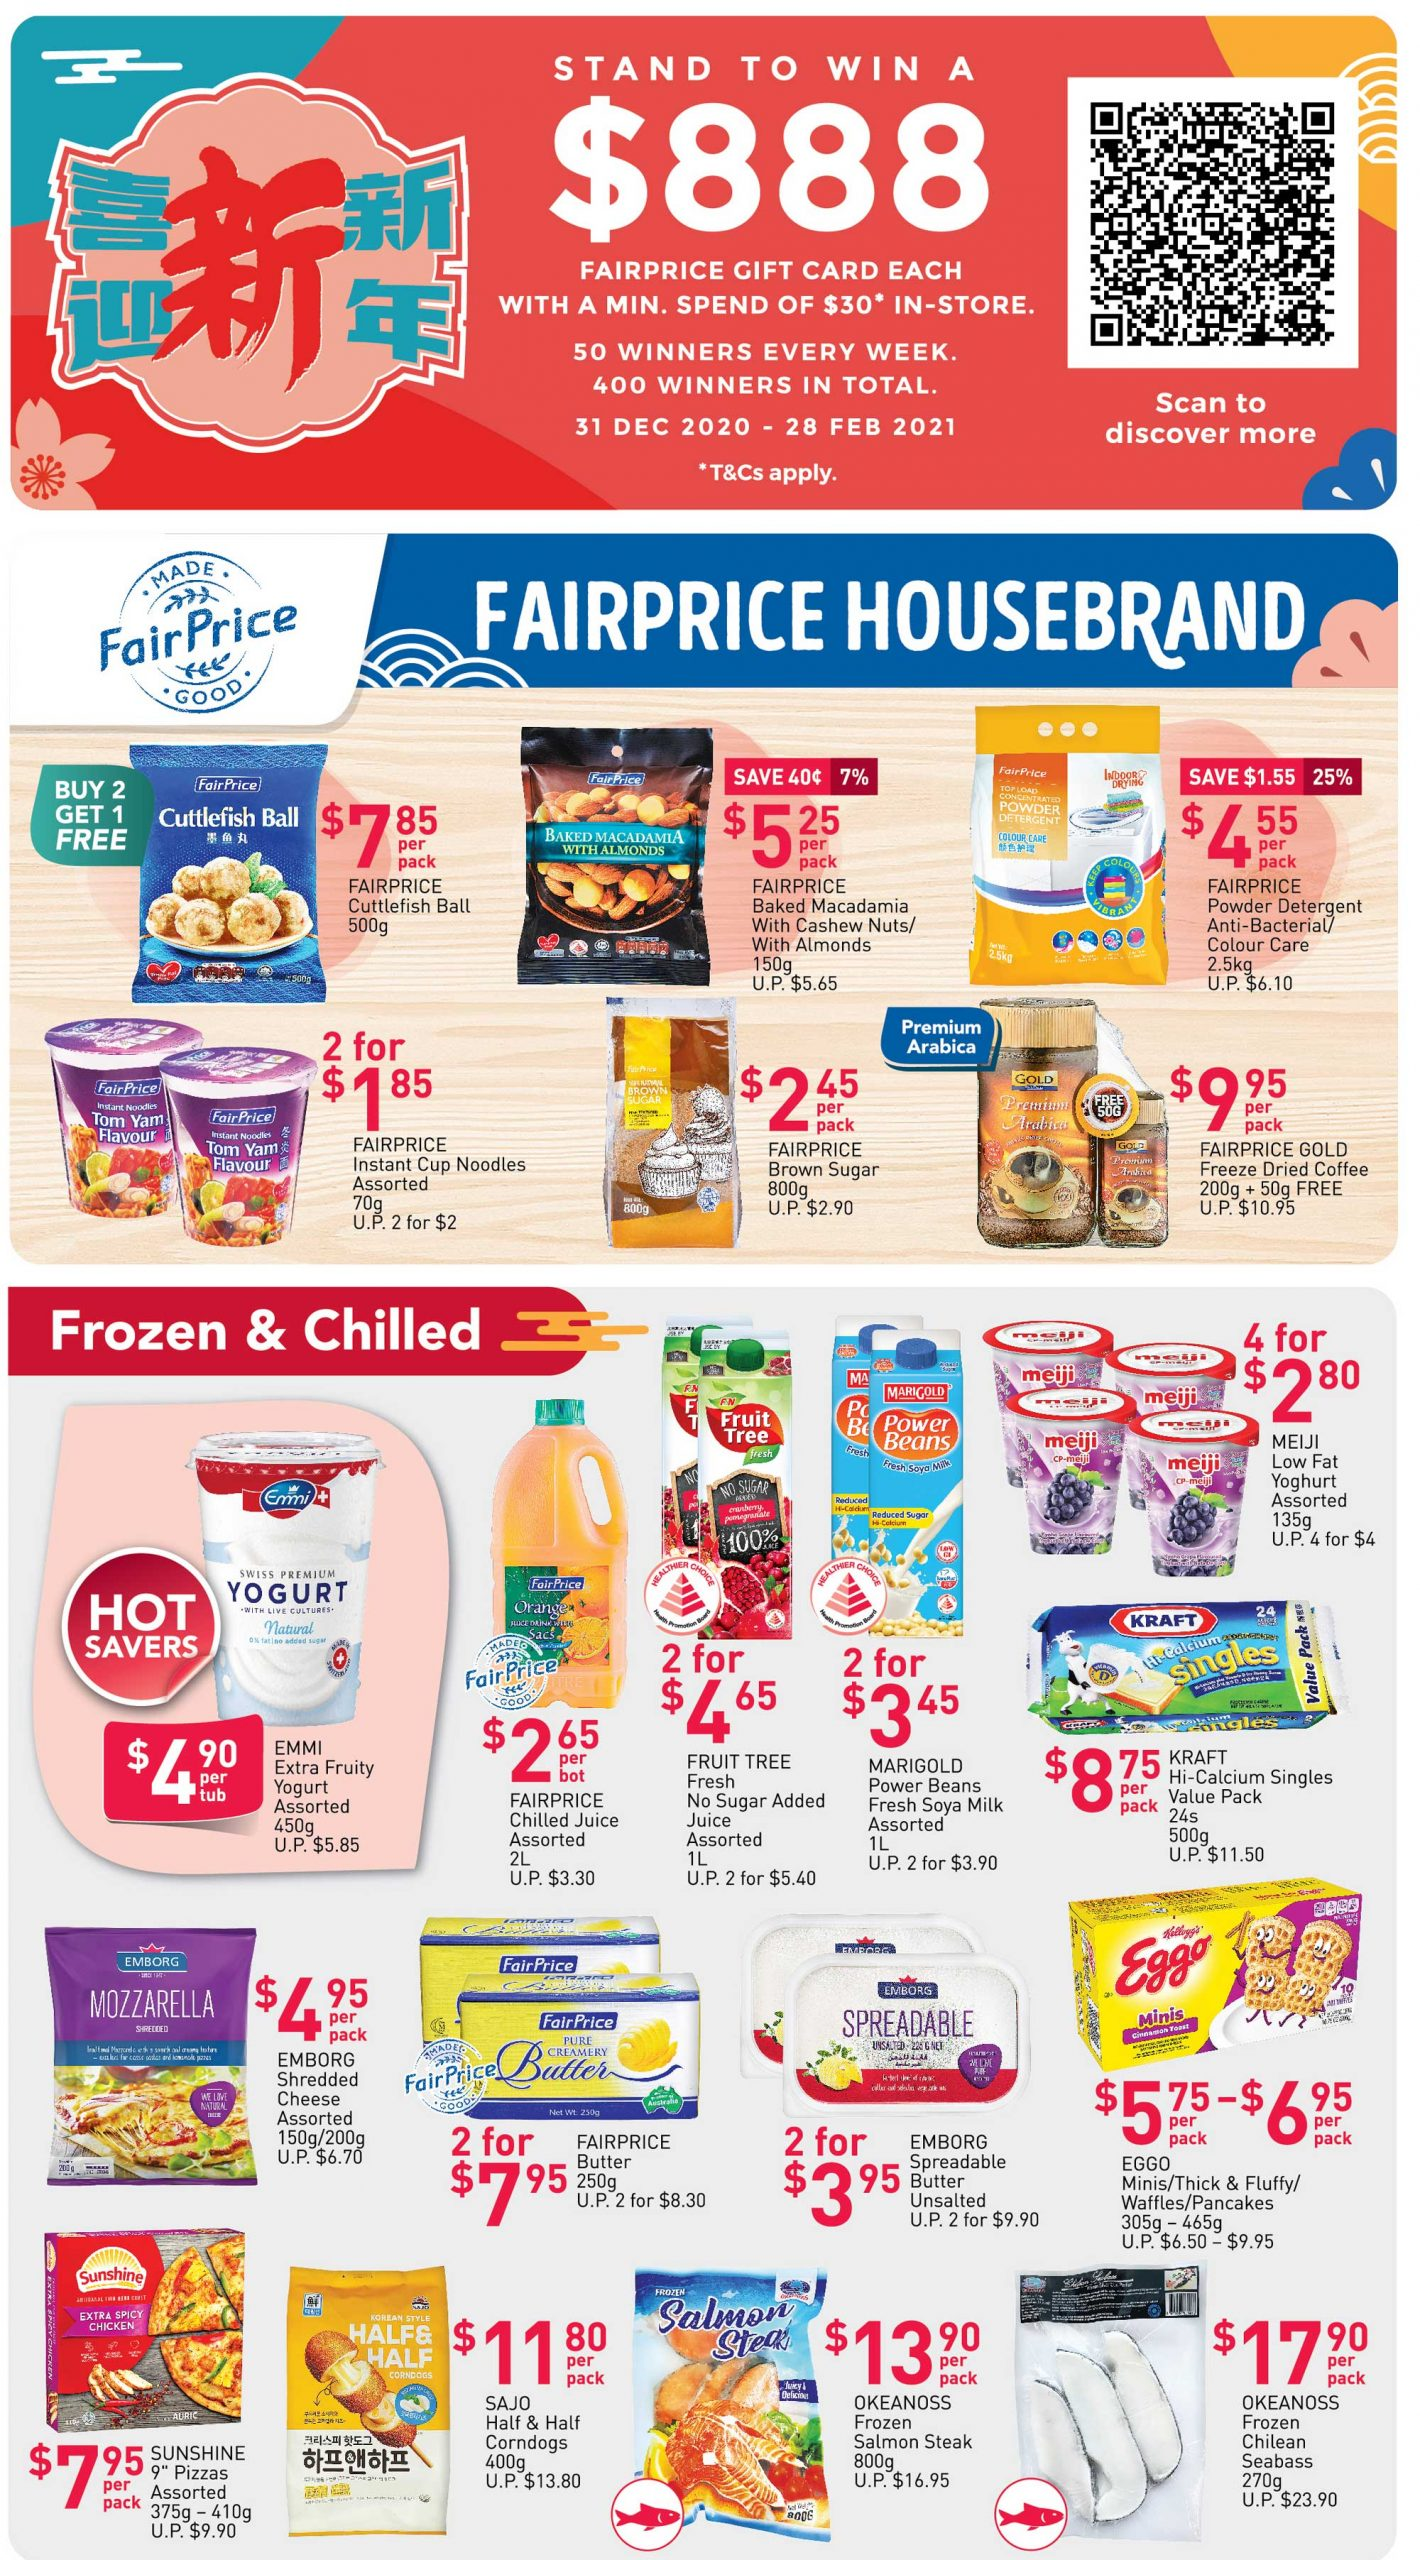 FairPrice's weekly saver deals till 3 March 2021 (1)